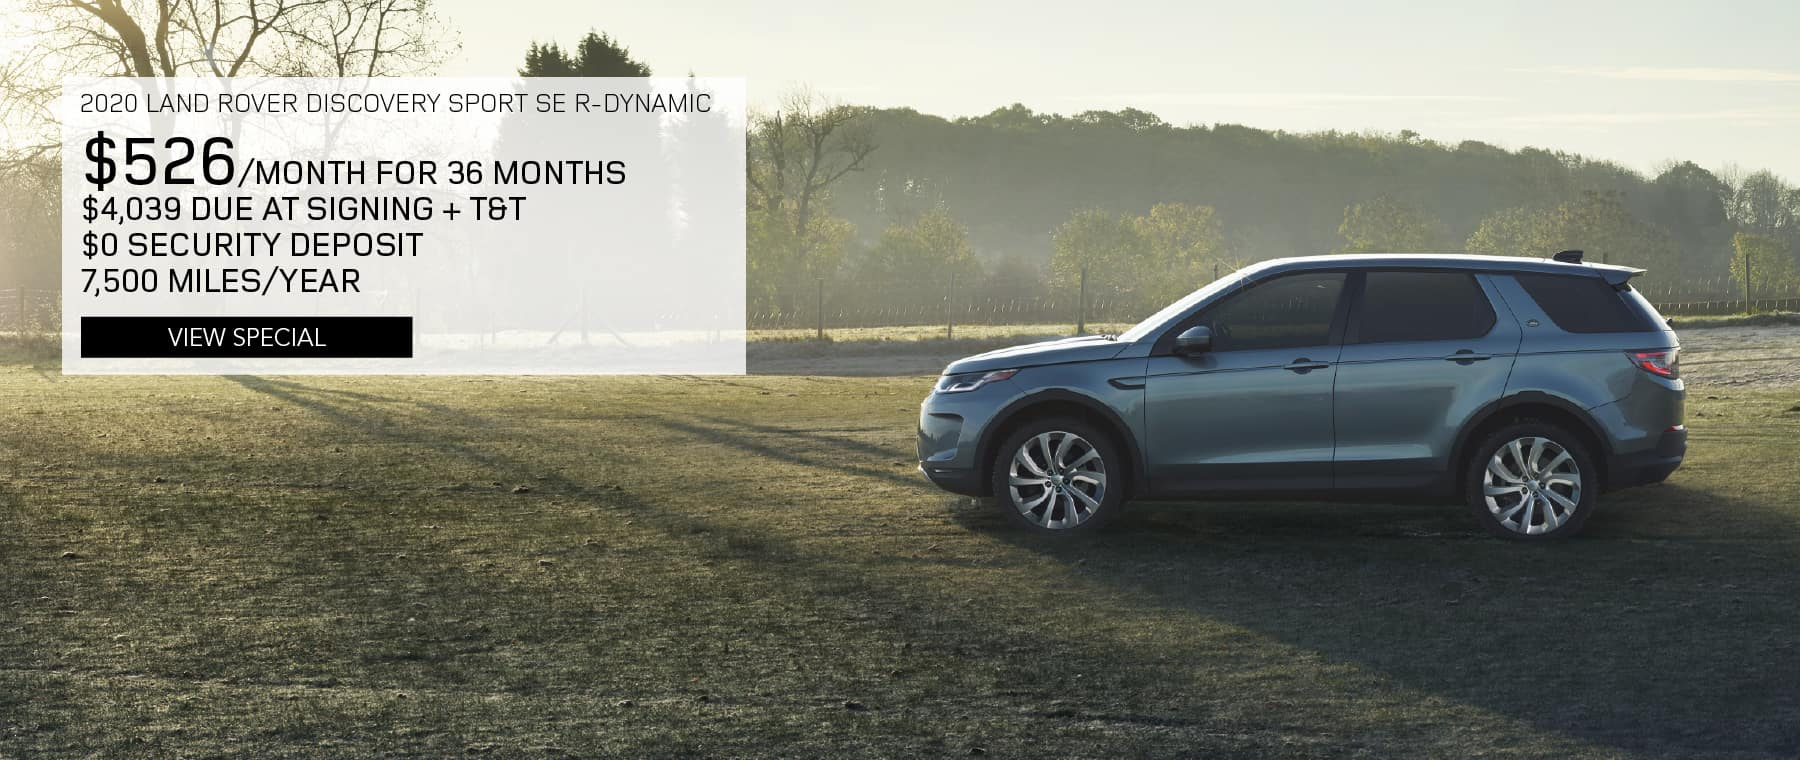 2020 LAND ROVER DISCOVERY SPORT SE R-DYNAMIC. $526 PER MONTH FOR 36 MONTHS. $4,039 DUE AT SIGNING PLUS TAX AND TITLE. $0 SECURITY DEPOSIT. 7,500 MILES PER YEAR. VIEW SPECIAL. BLUE LAND ROVER DISCOVERY SPORT PARKED ON FOOTBALL FIELD.